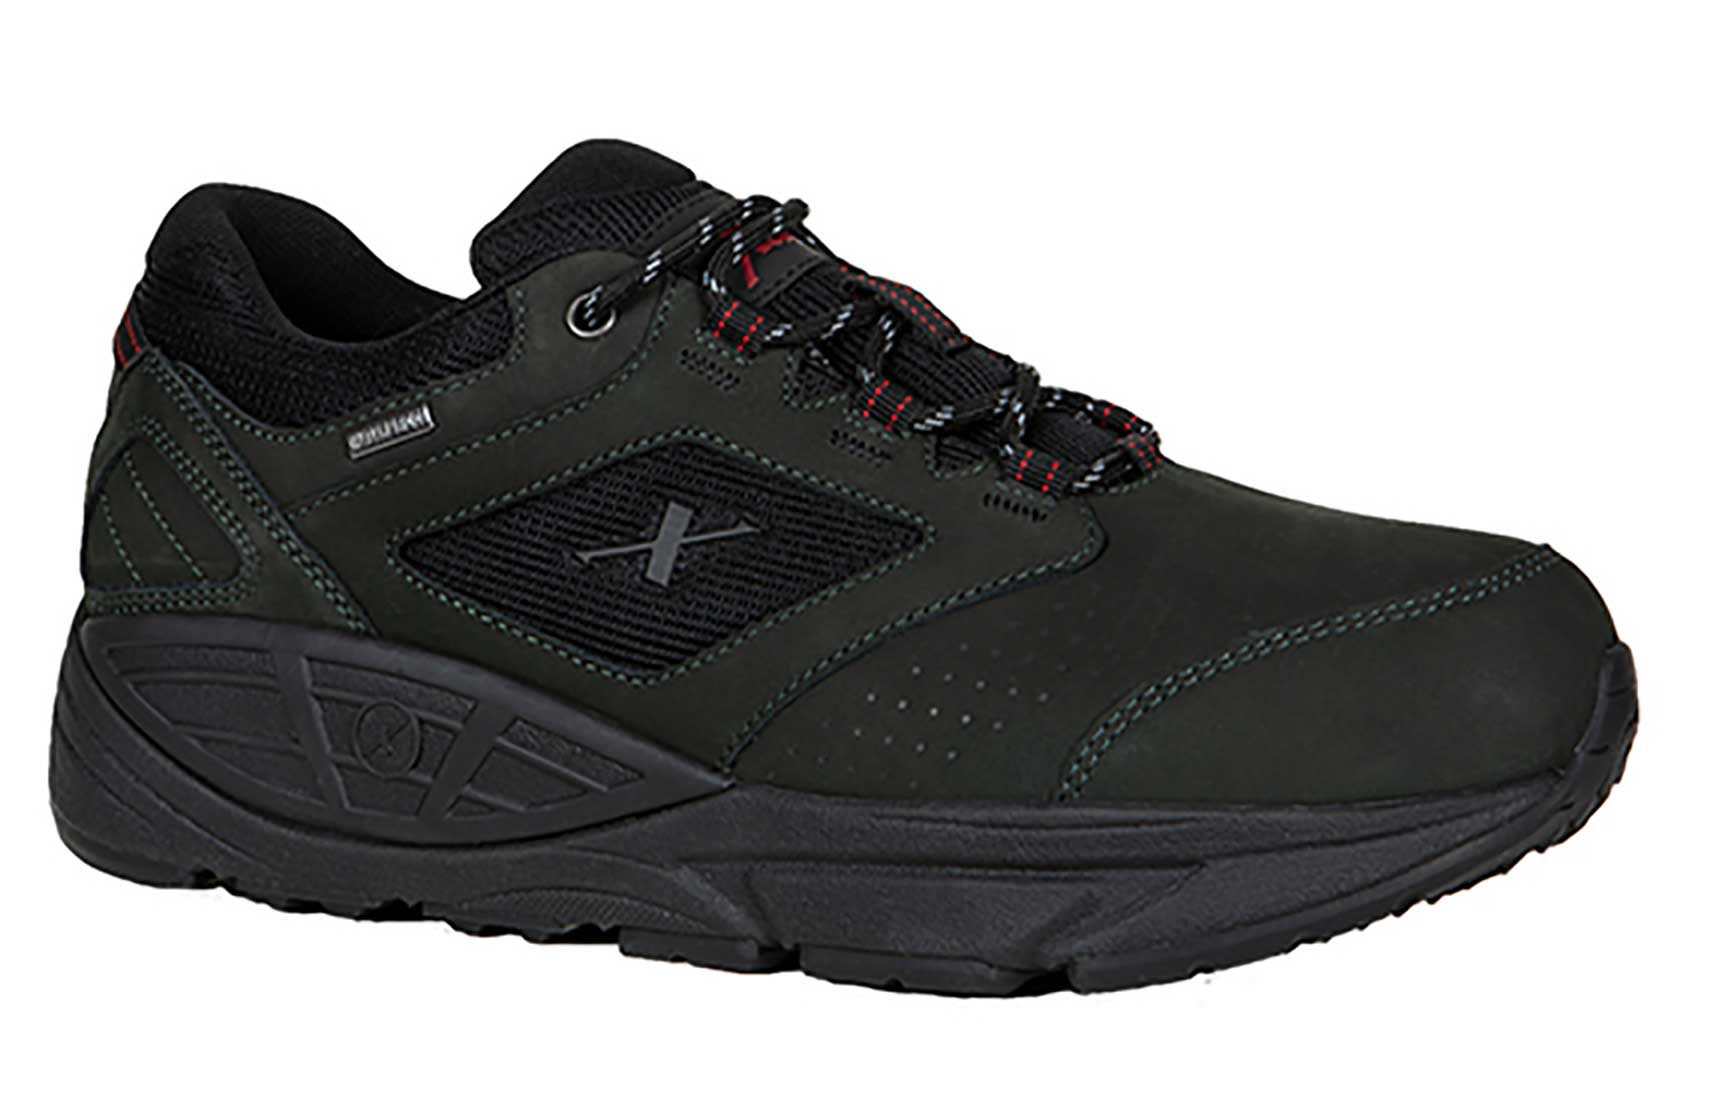 Xelero Hyperion II - Black - Outdoor Water proof Hiking and Athletic Shoe